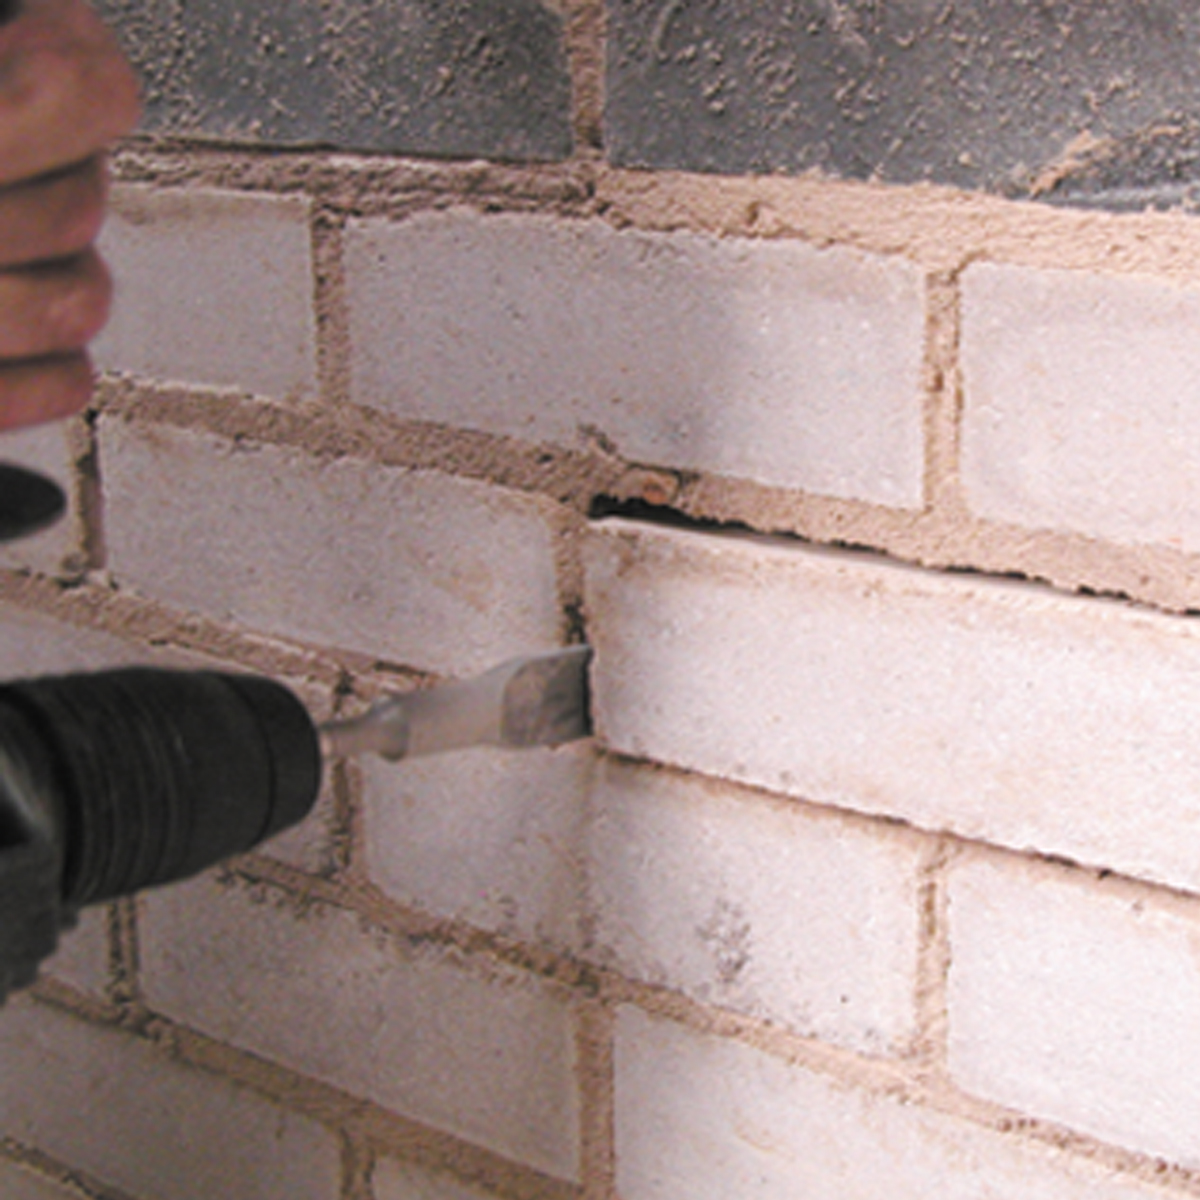 Brick Removing Chisel - Carbide Tipped